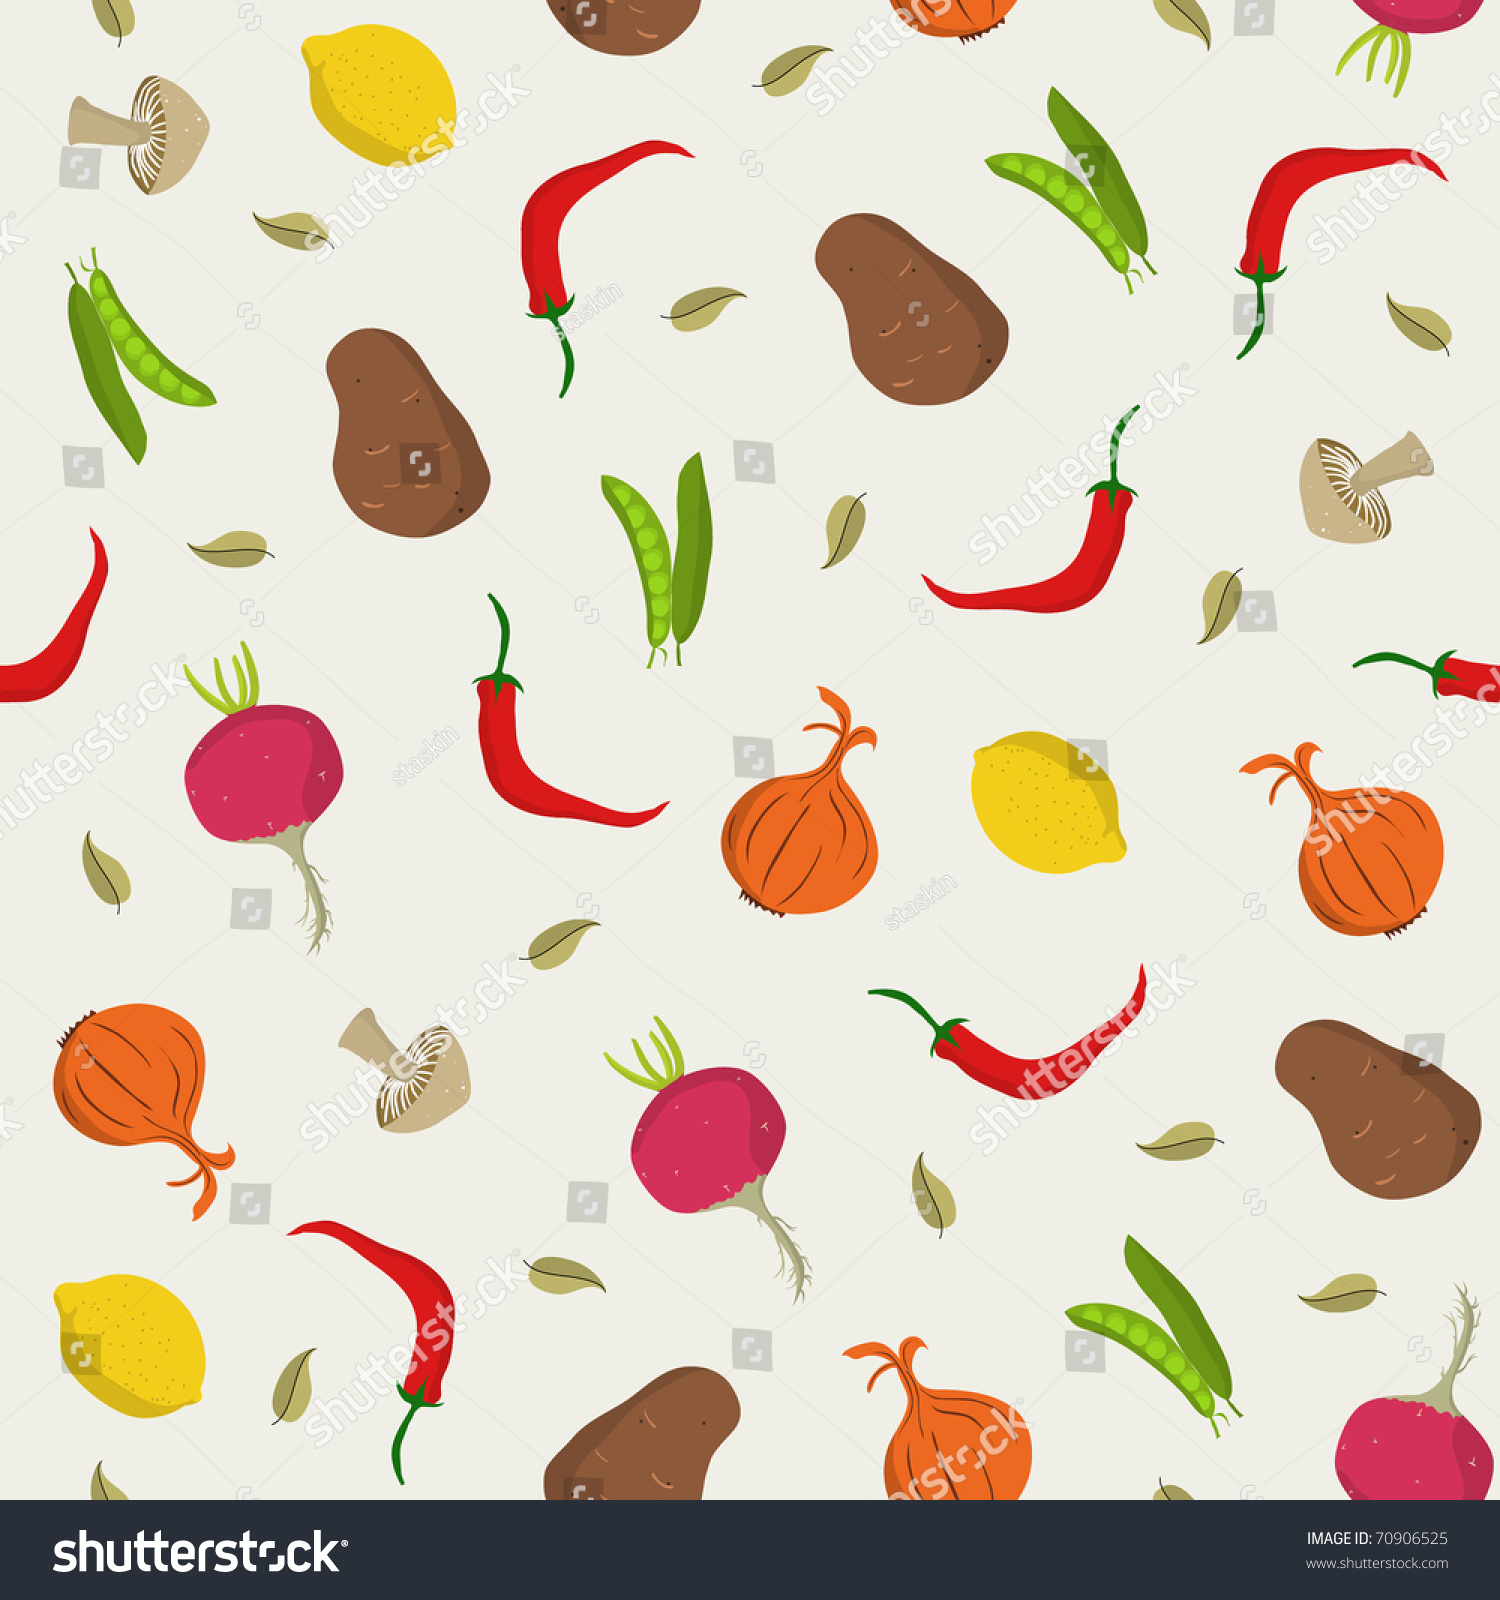 Vegetable pattern - photo#4